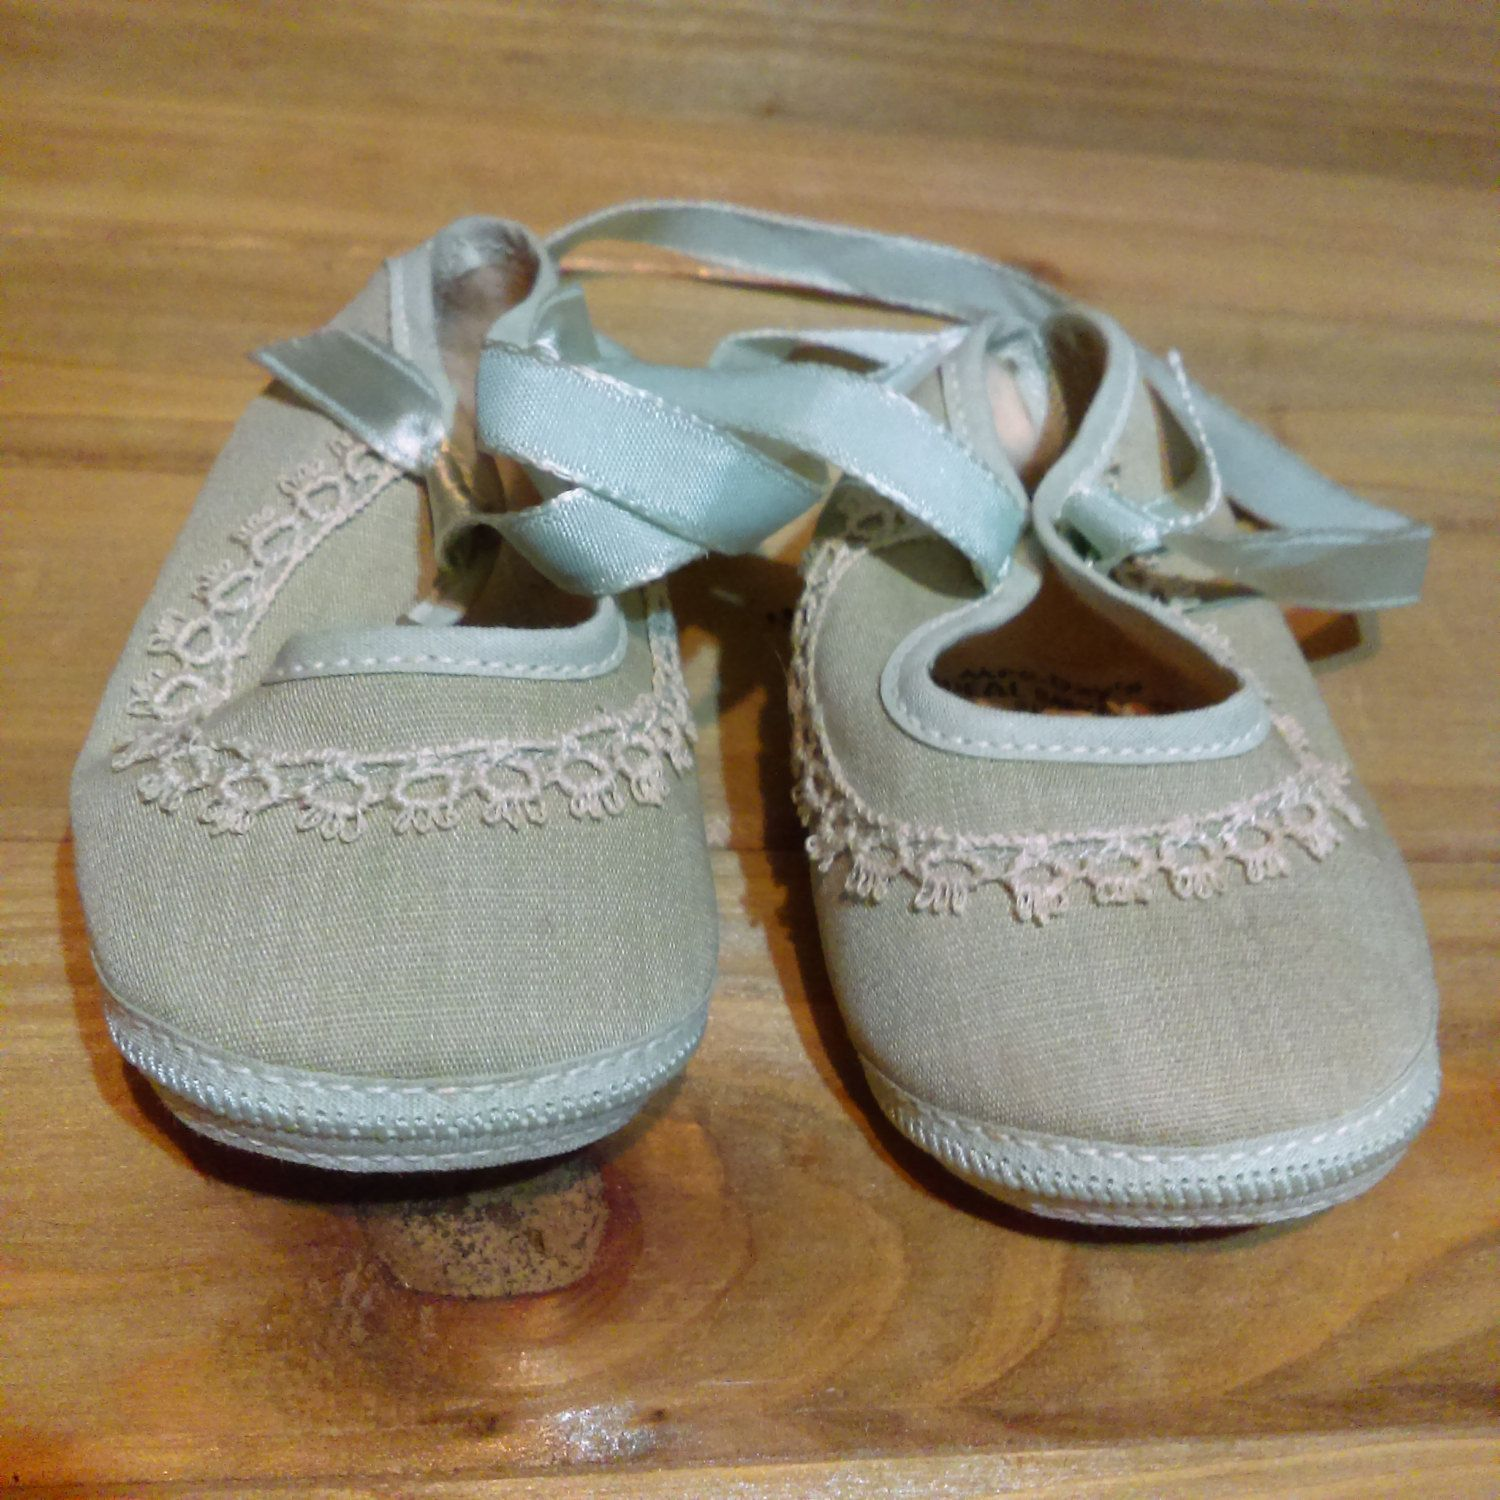 Vintage Newborn Shoes Infant Baby Shoes 1940s Mrs Days IDEAL Baby